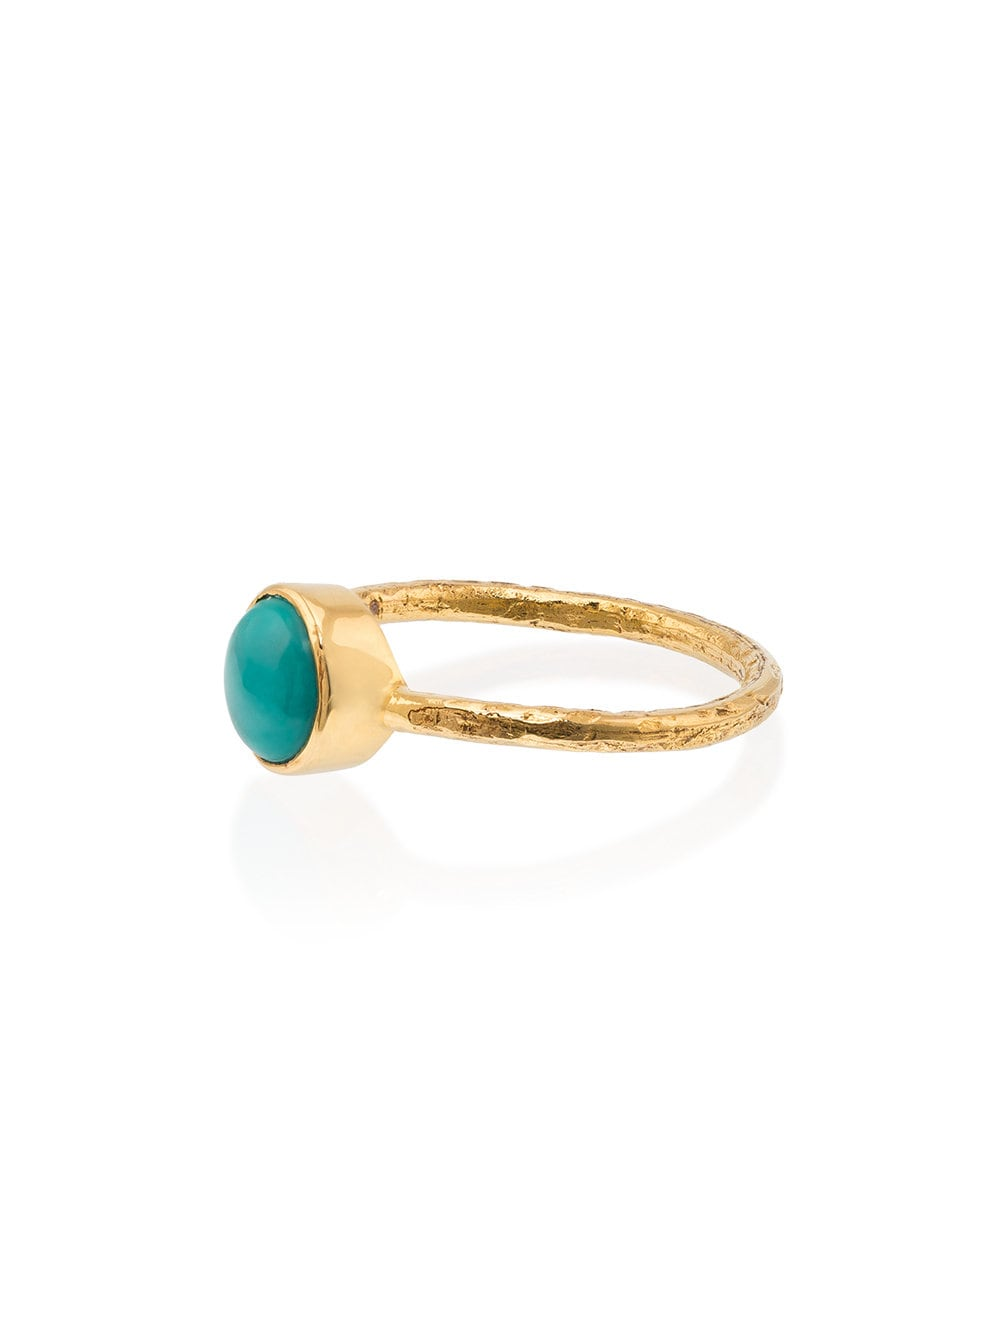 18k gold and turquoise Sleeping Beauty ring